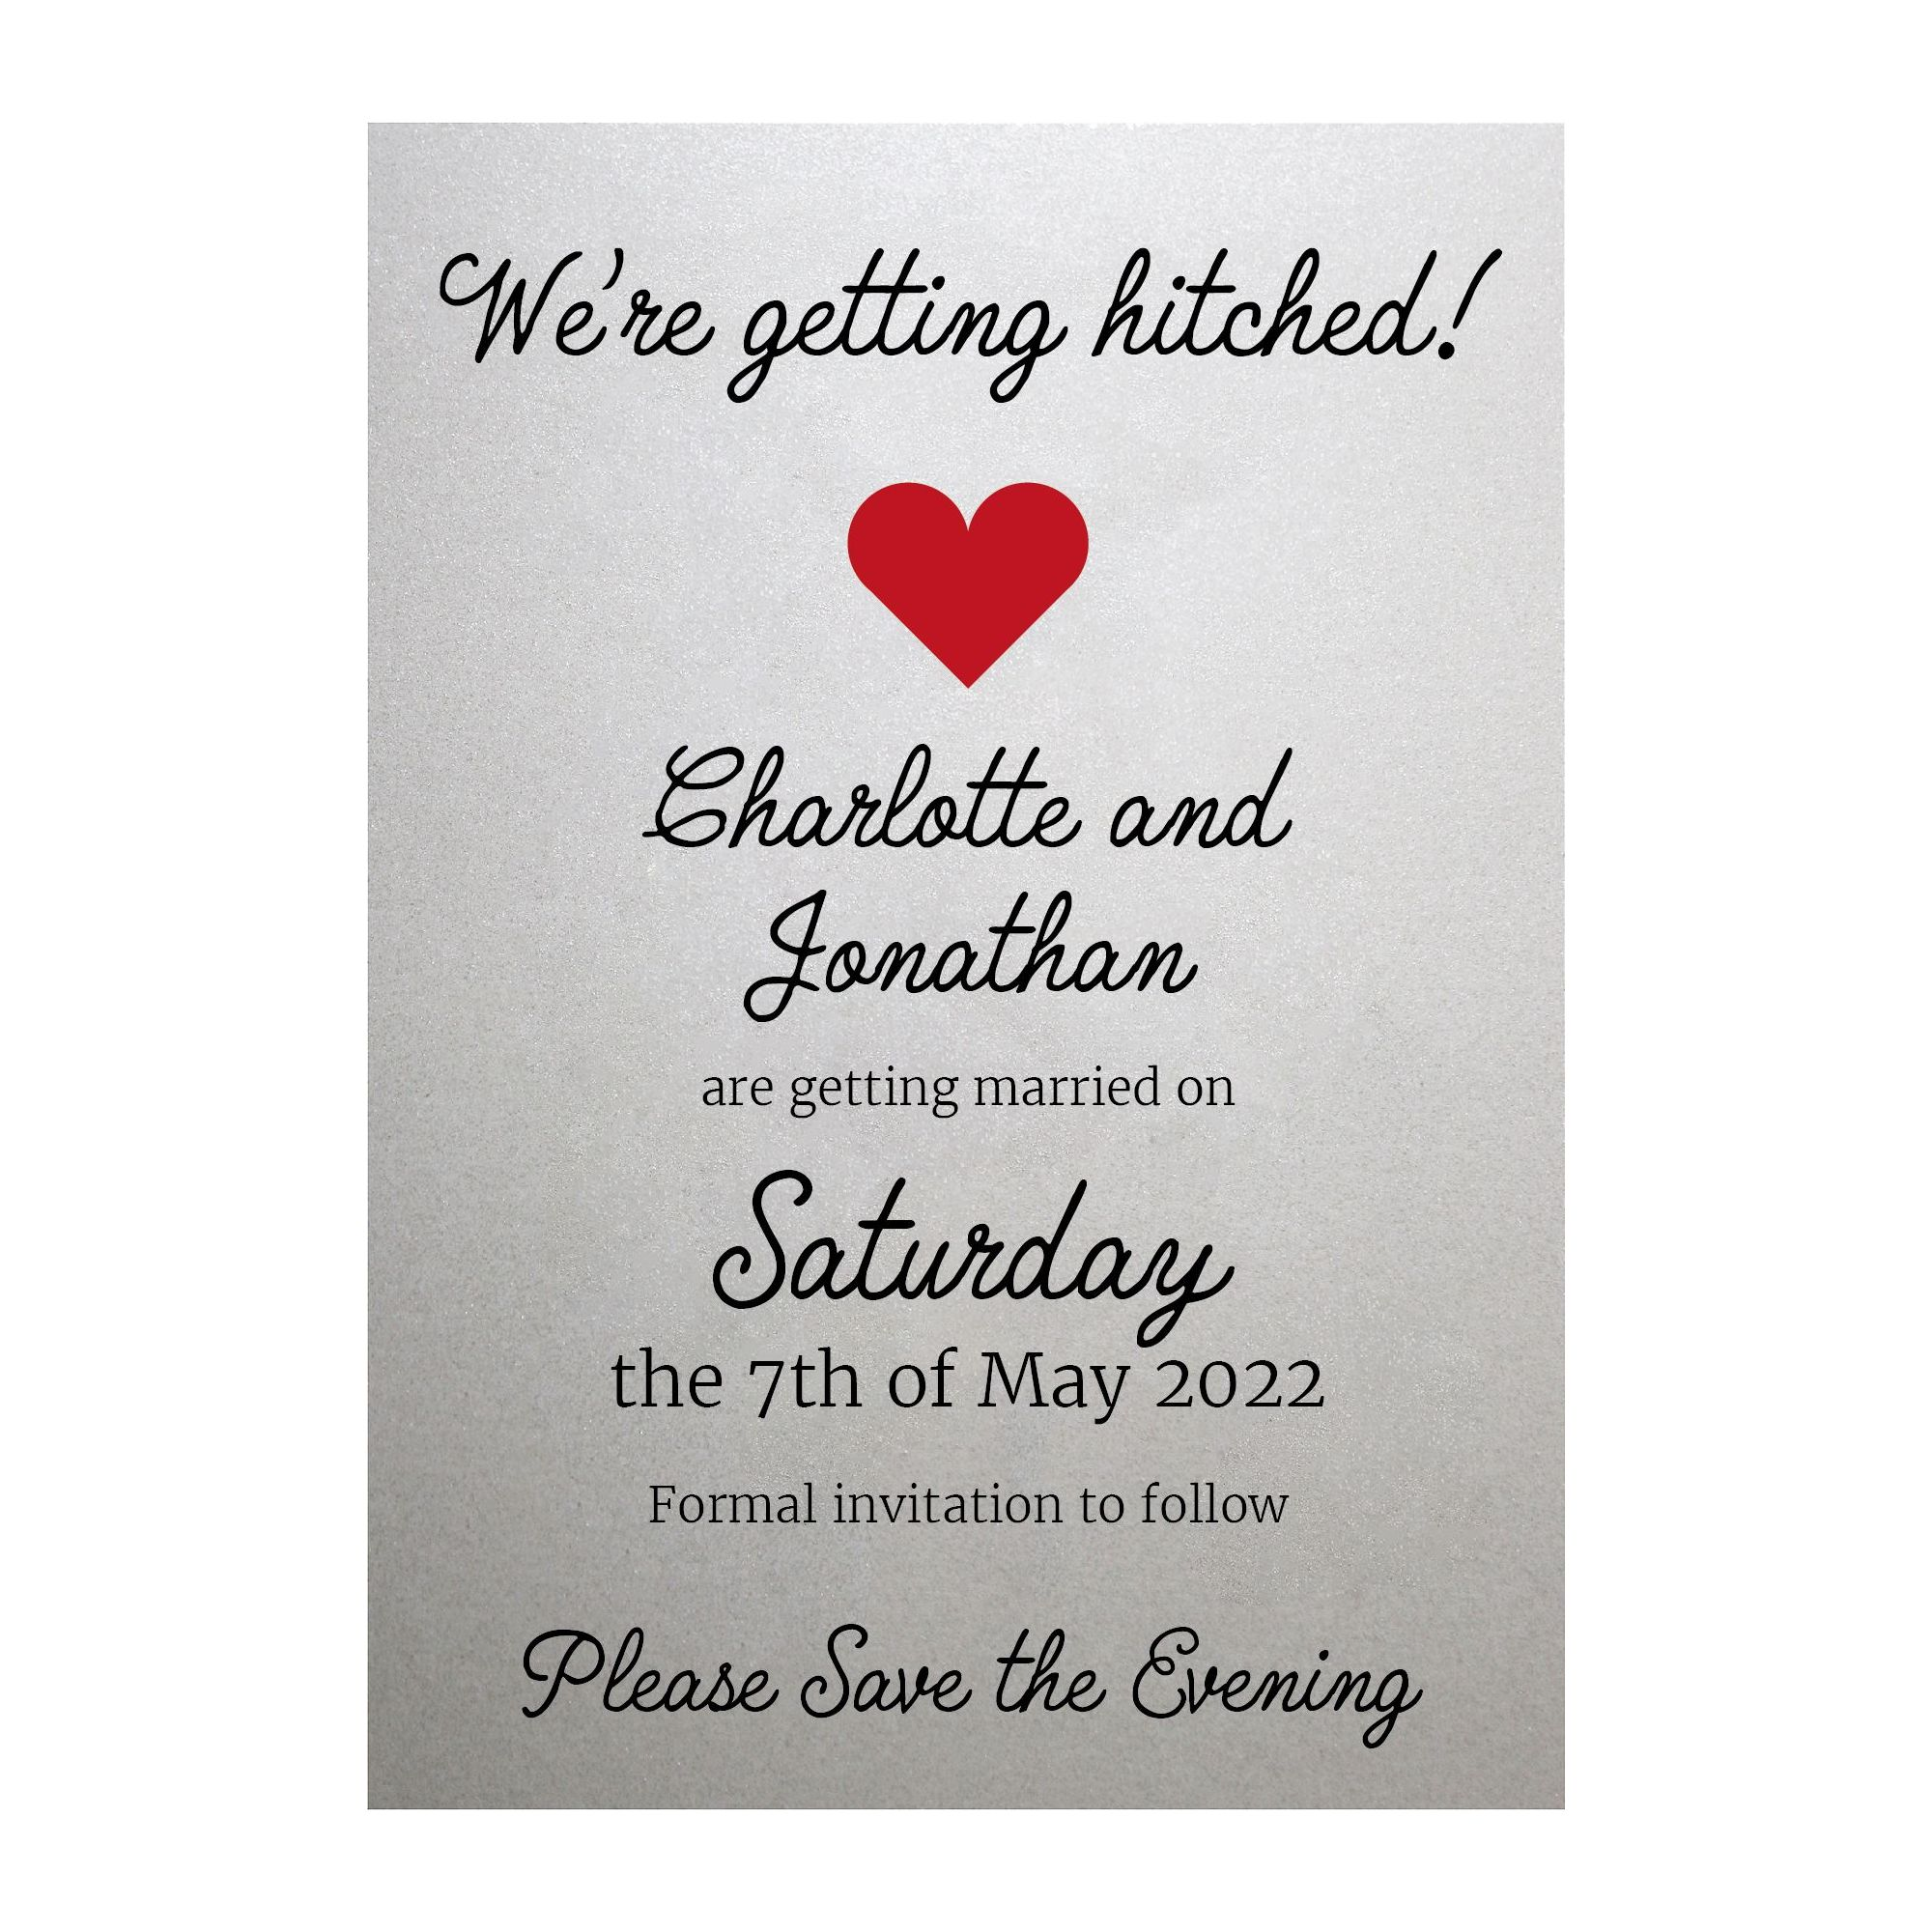 Shimmer Arctic White We're Getting Hitched Save the Evening Cards